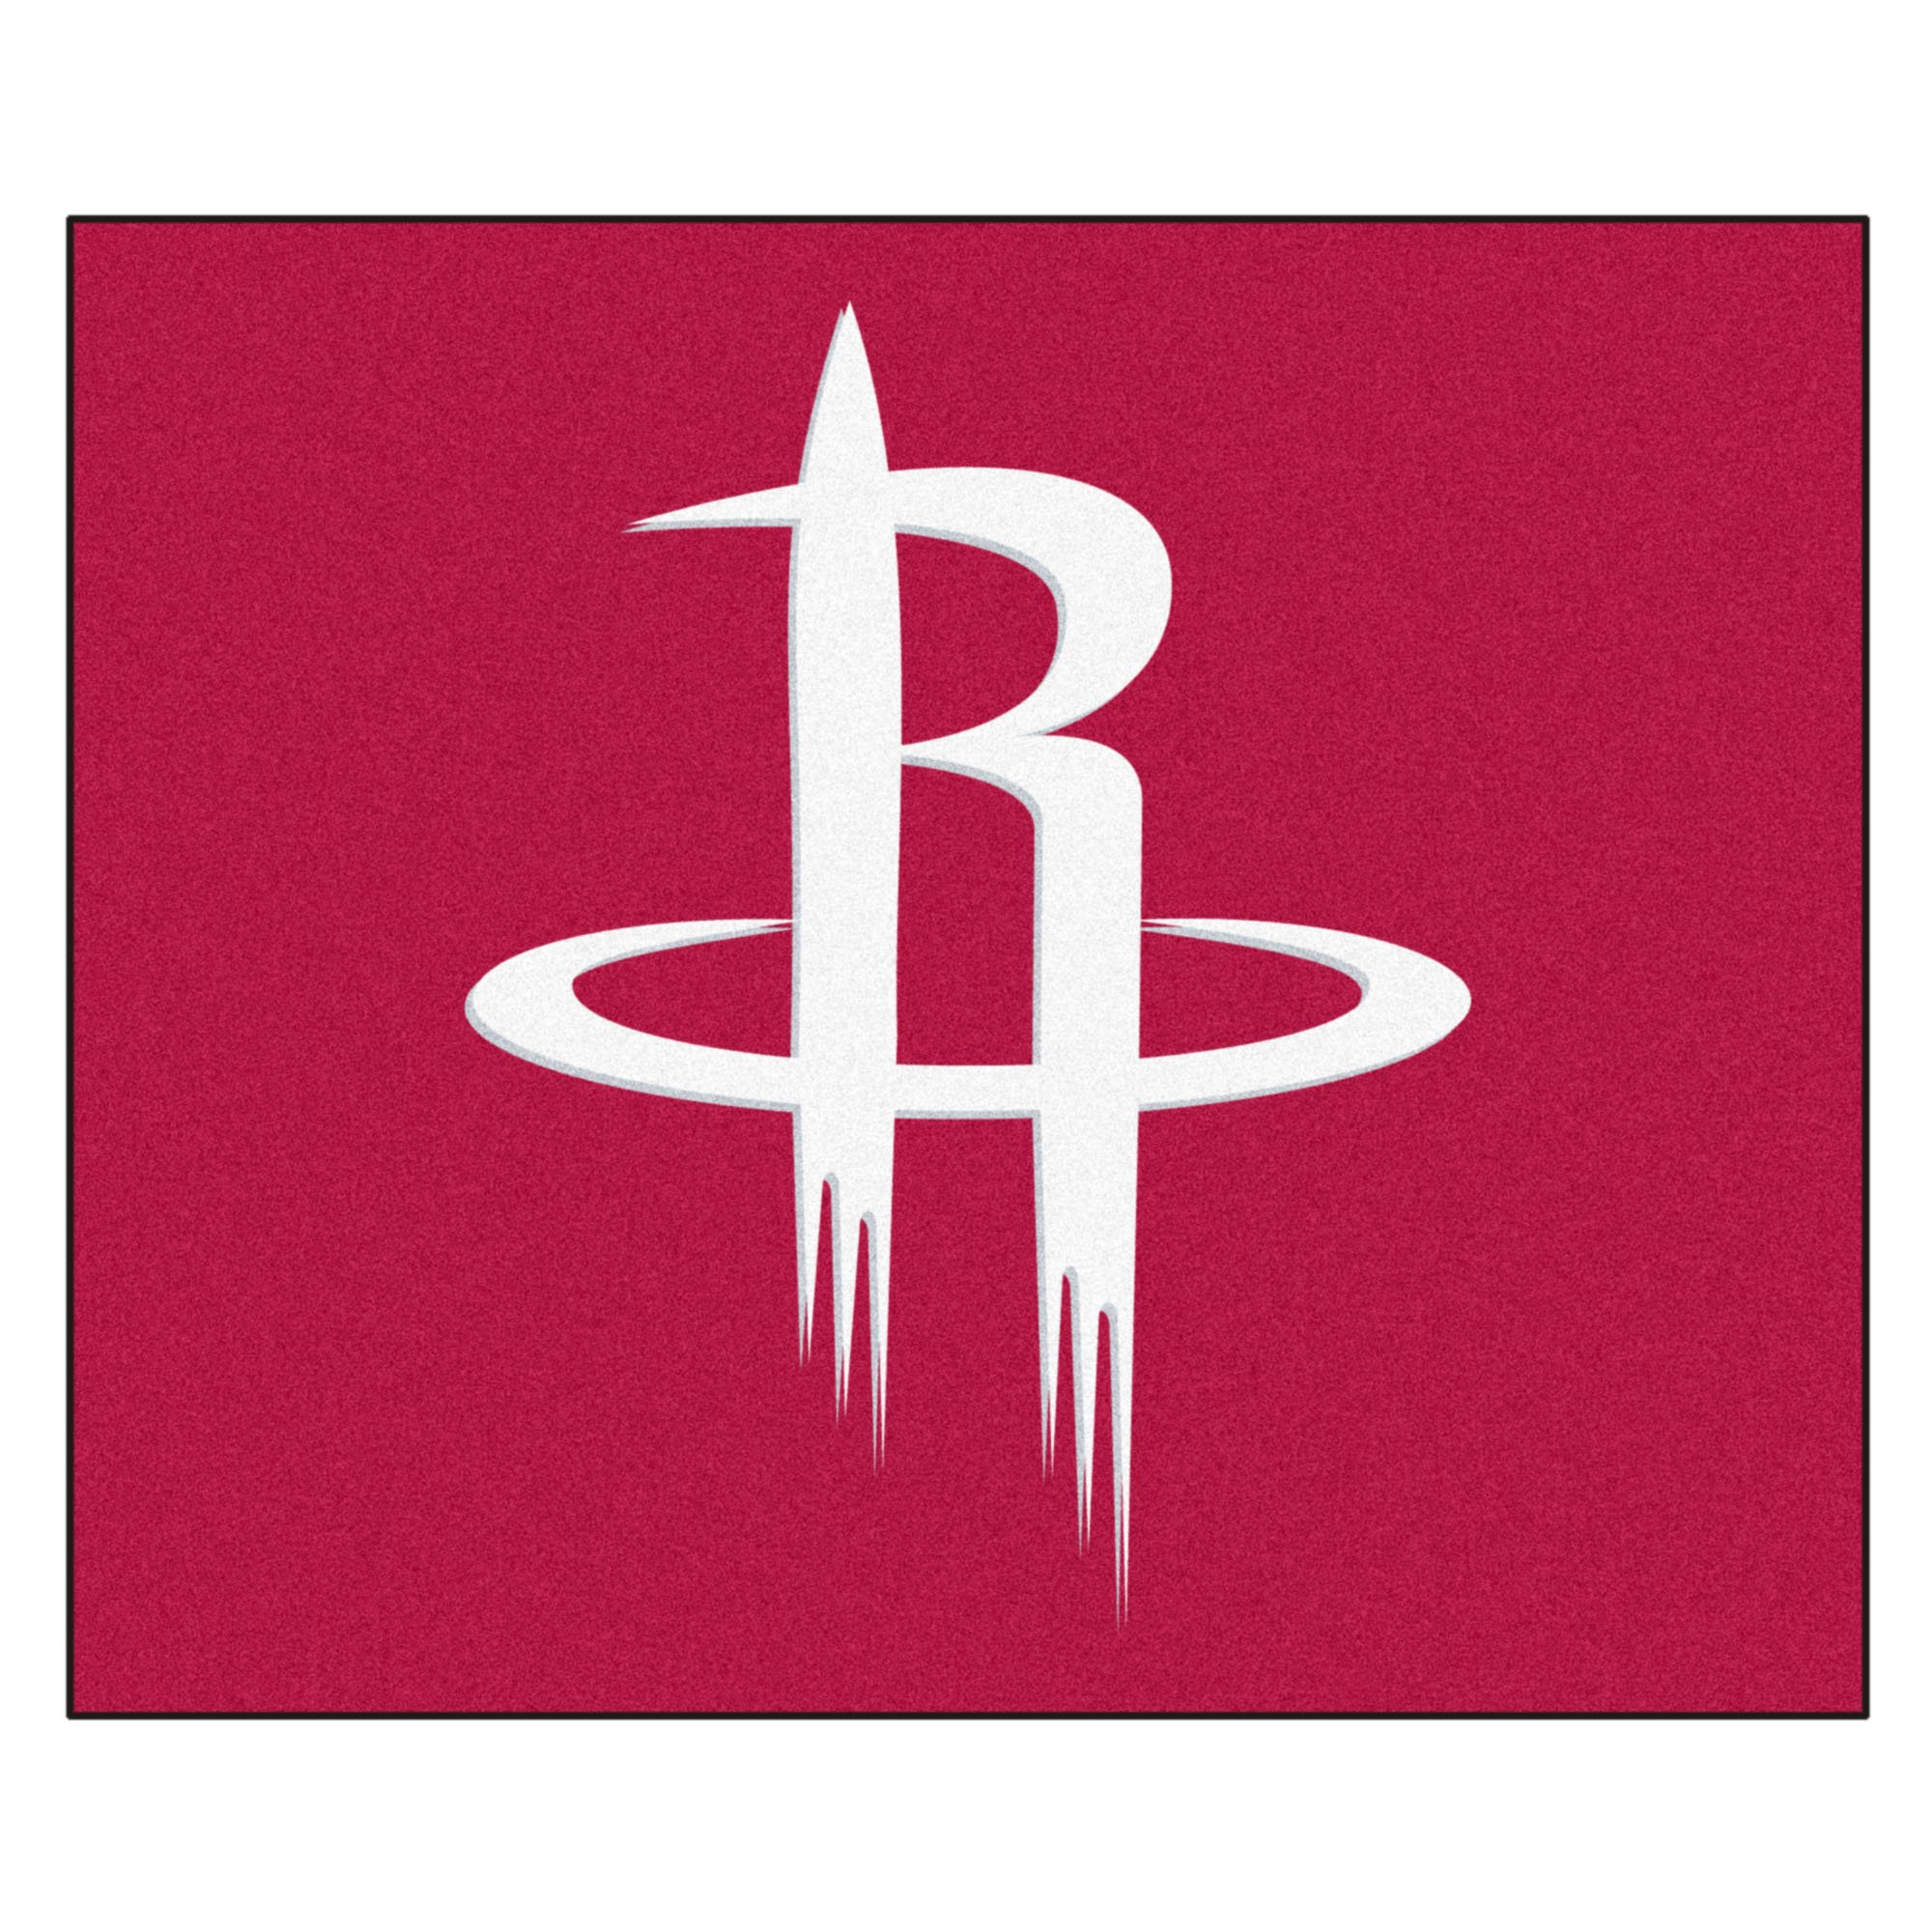 FANMATS 19443 NBA - Houston Rockets Tailgater Rug , Team Color, 59.5''x71''